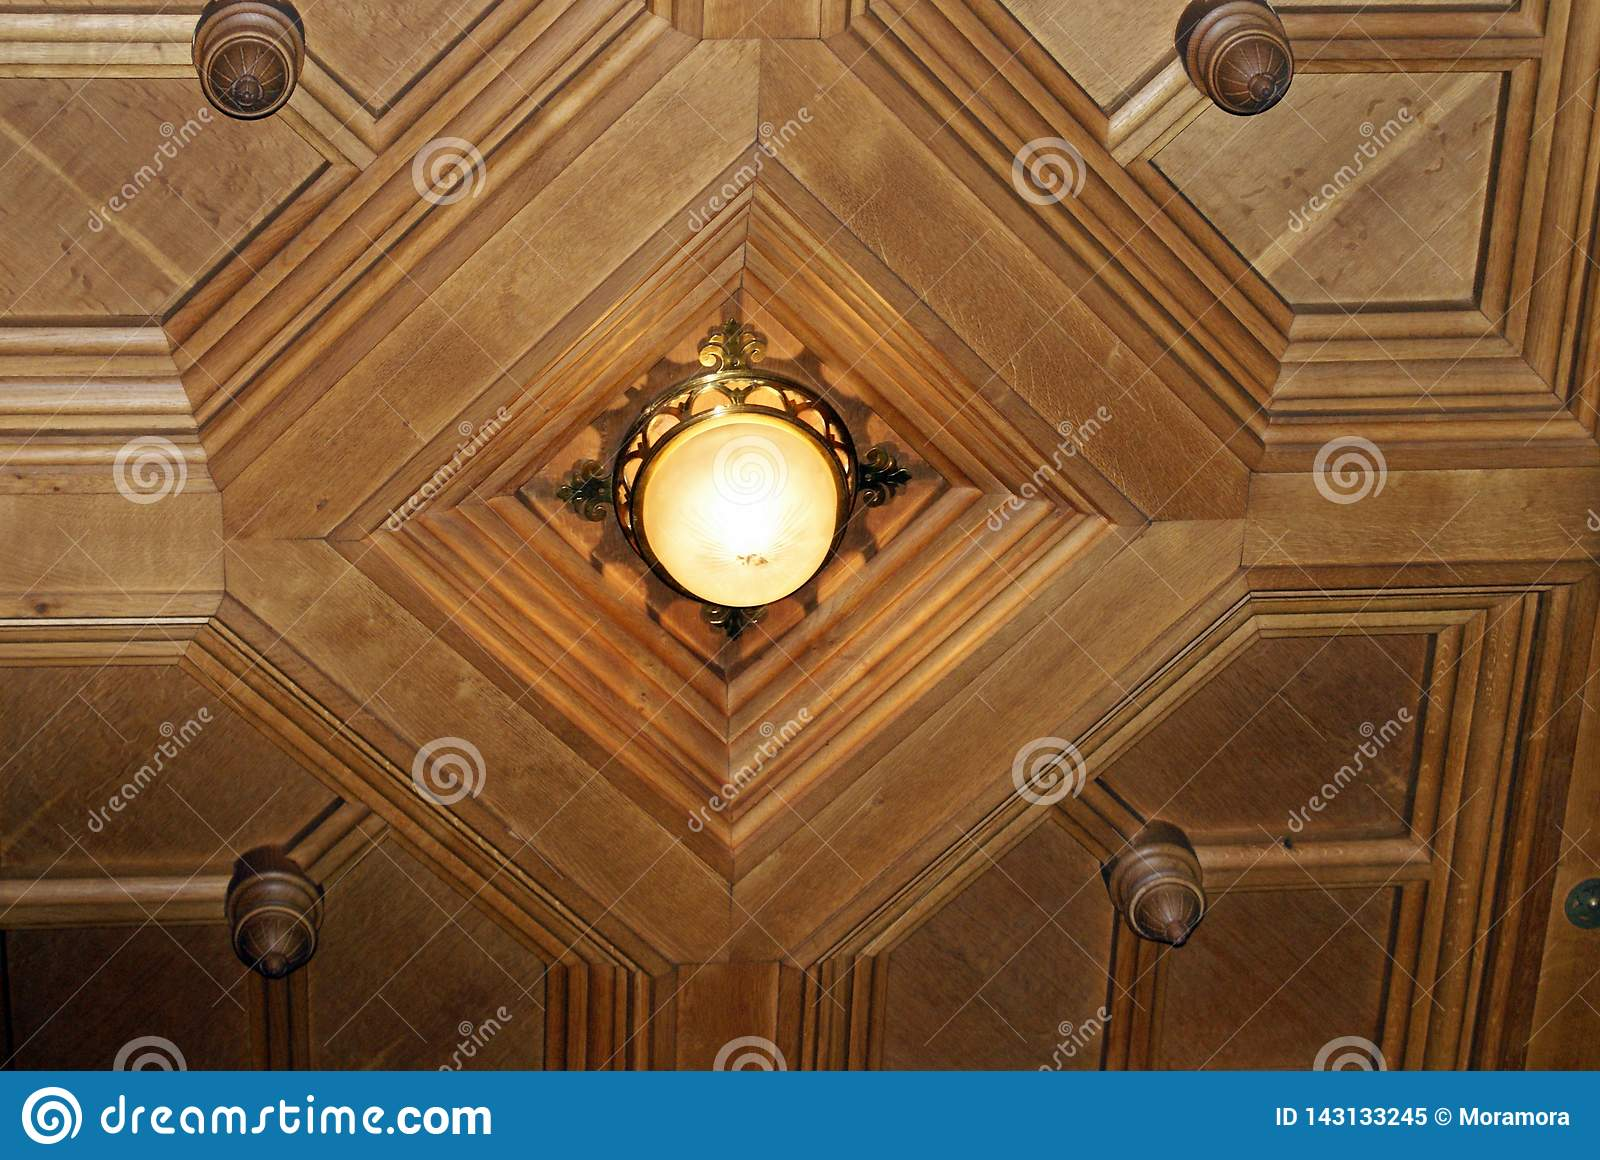 Ceiling Lamp In Glass And Metal Art Deco Style Stock Image Image Of Lights Home 143133245